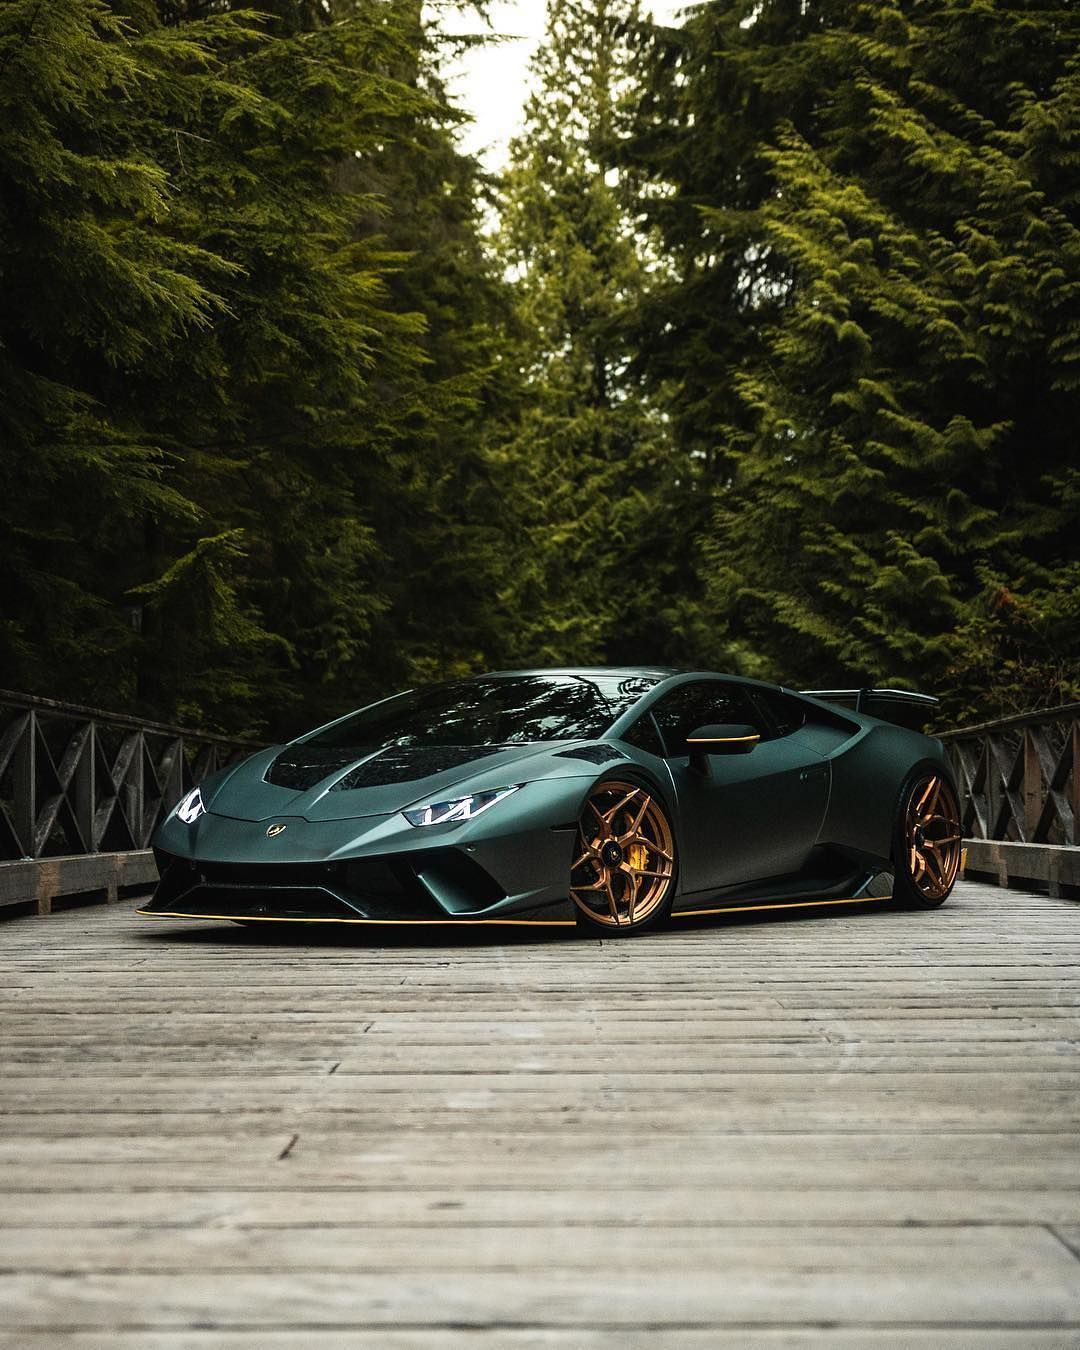 Top 20 Fastest Cars In The World Best Picture Fastest Sports Cars Fast Cars Sports Car Car In The World